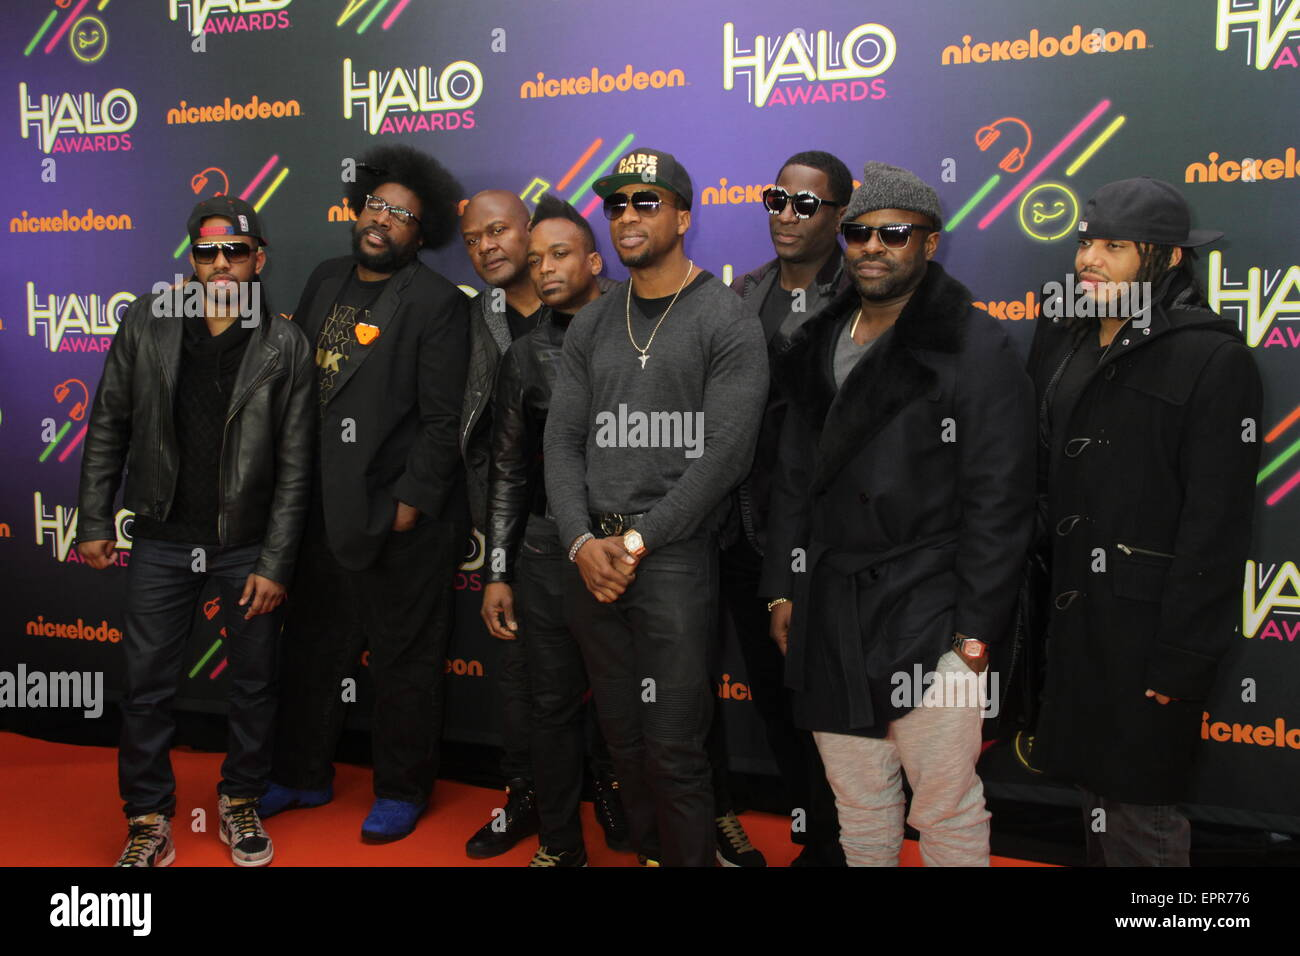 Nickelodeon HALO Awards at Pier 36 in New York City  Featuring: (L-R) Musicians Tuba Gooding Jr.,Questlove,James Stock Photo